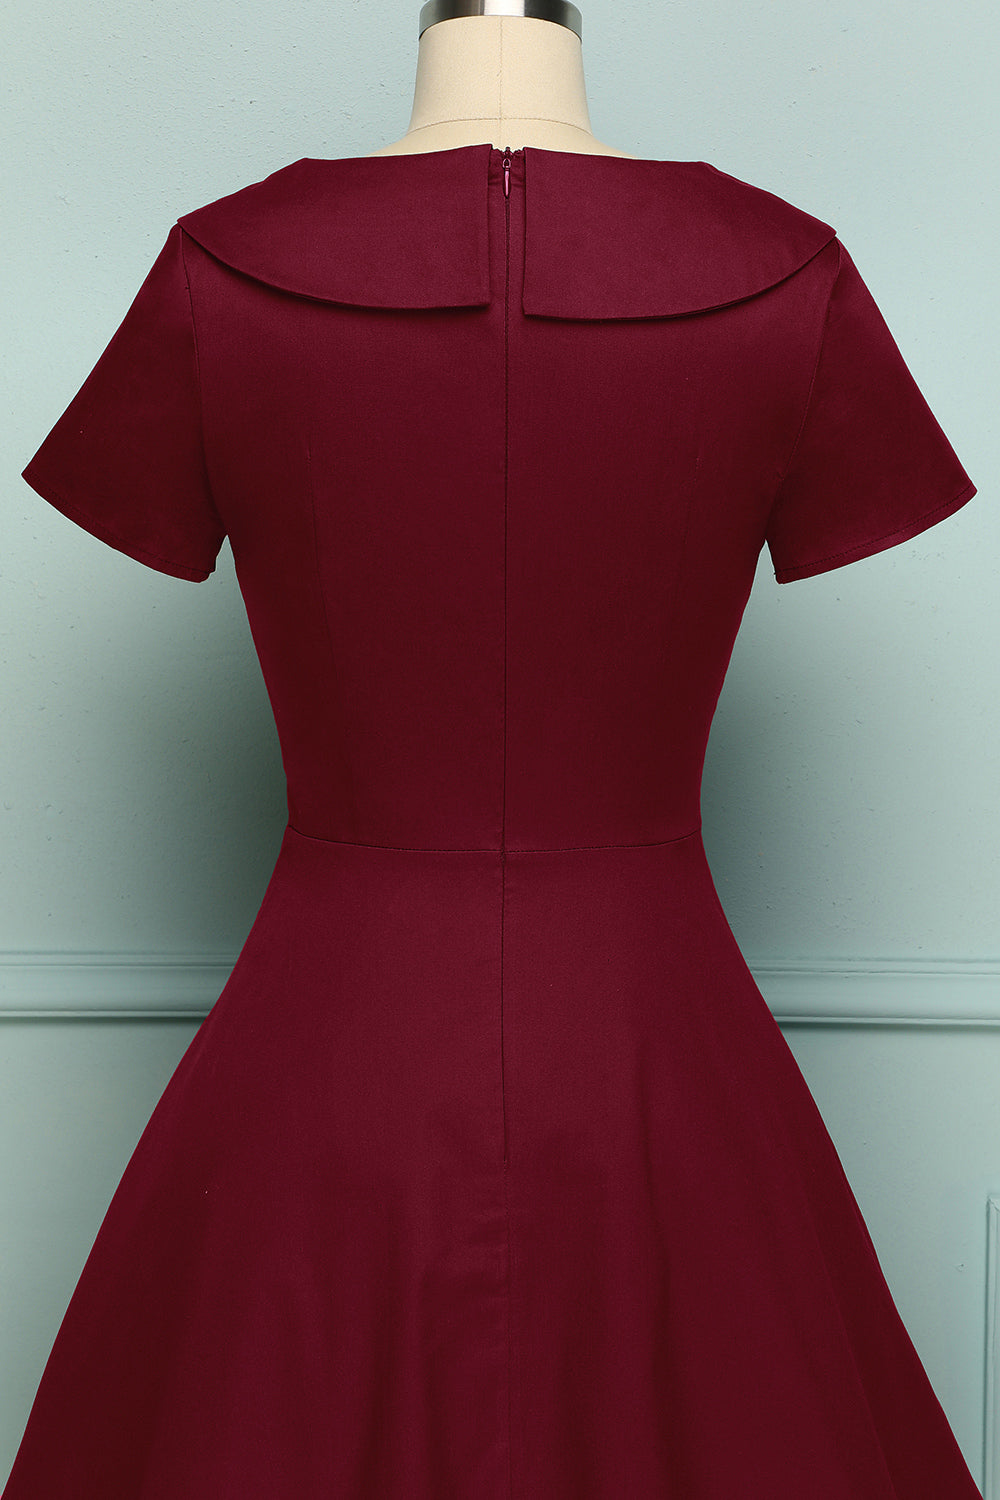 Peter Pans Collar 1950s Dress